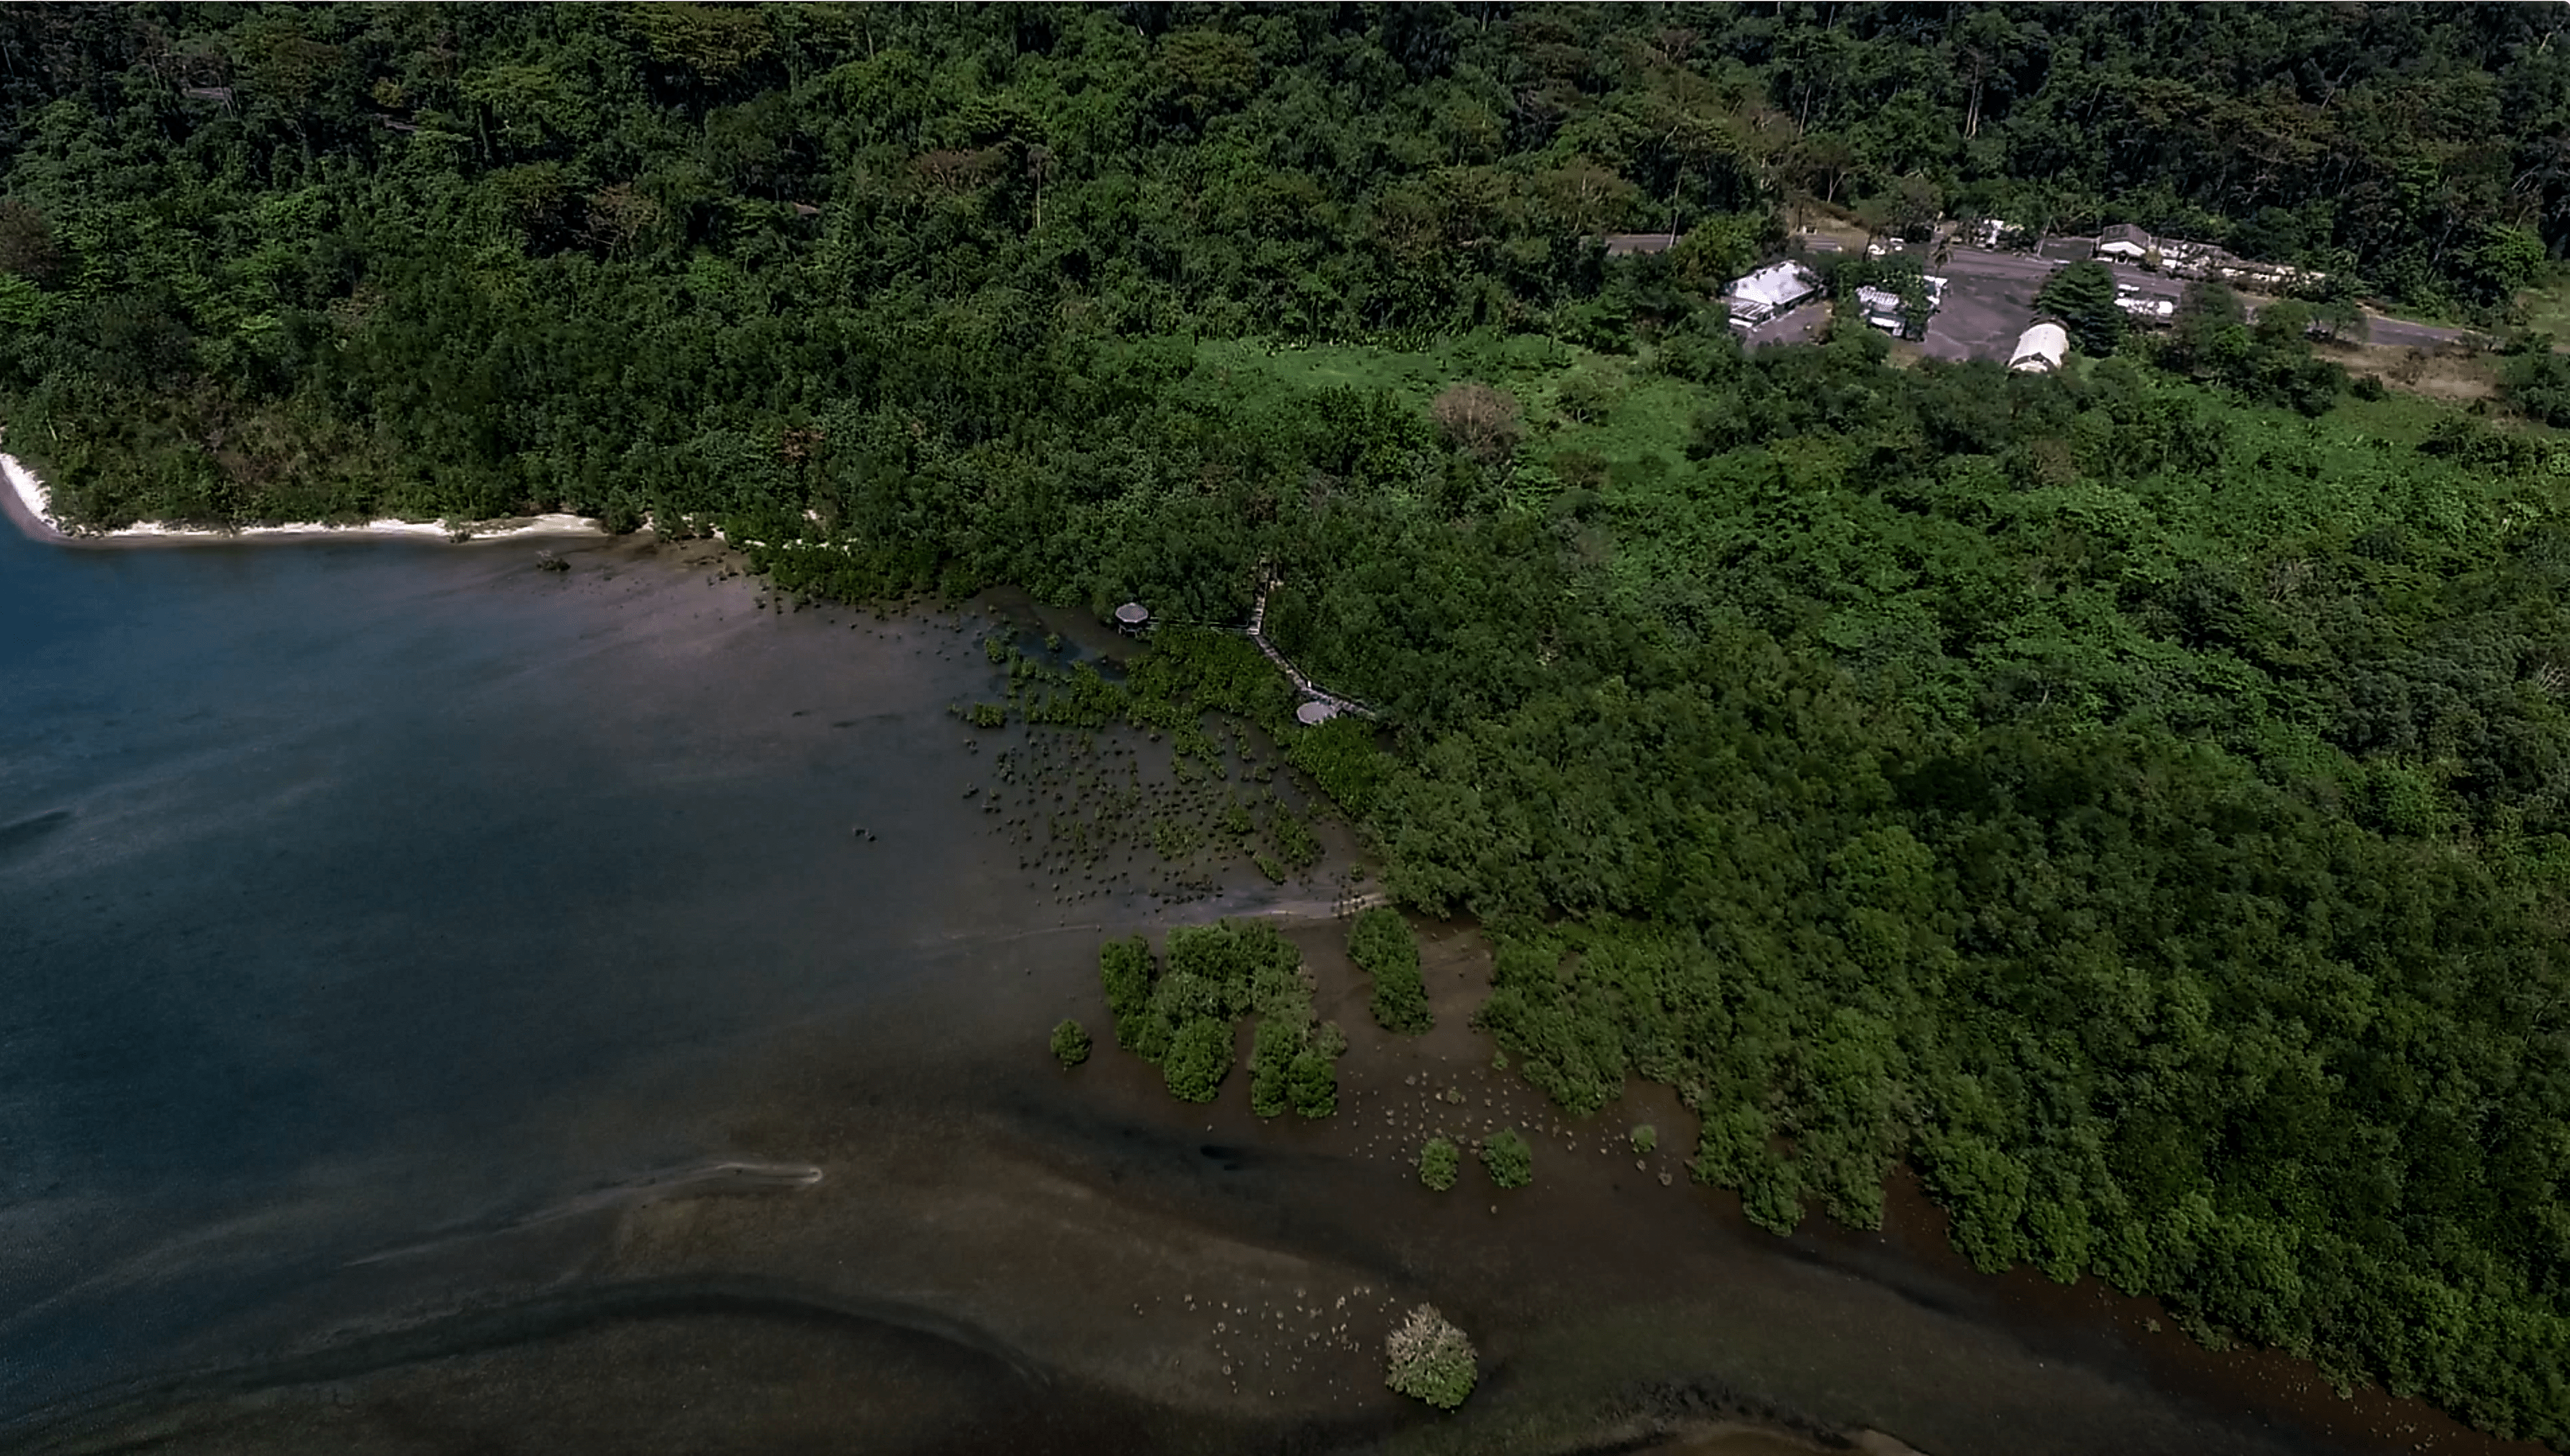 drone shot of triboa bay mangrove park in subic zambales philippines